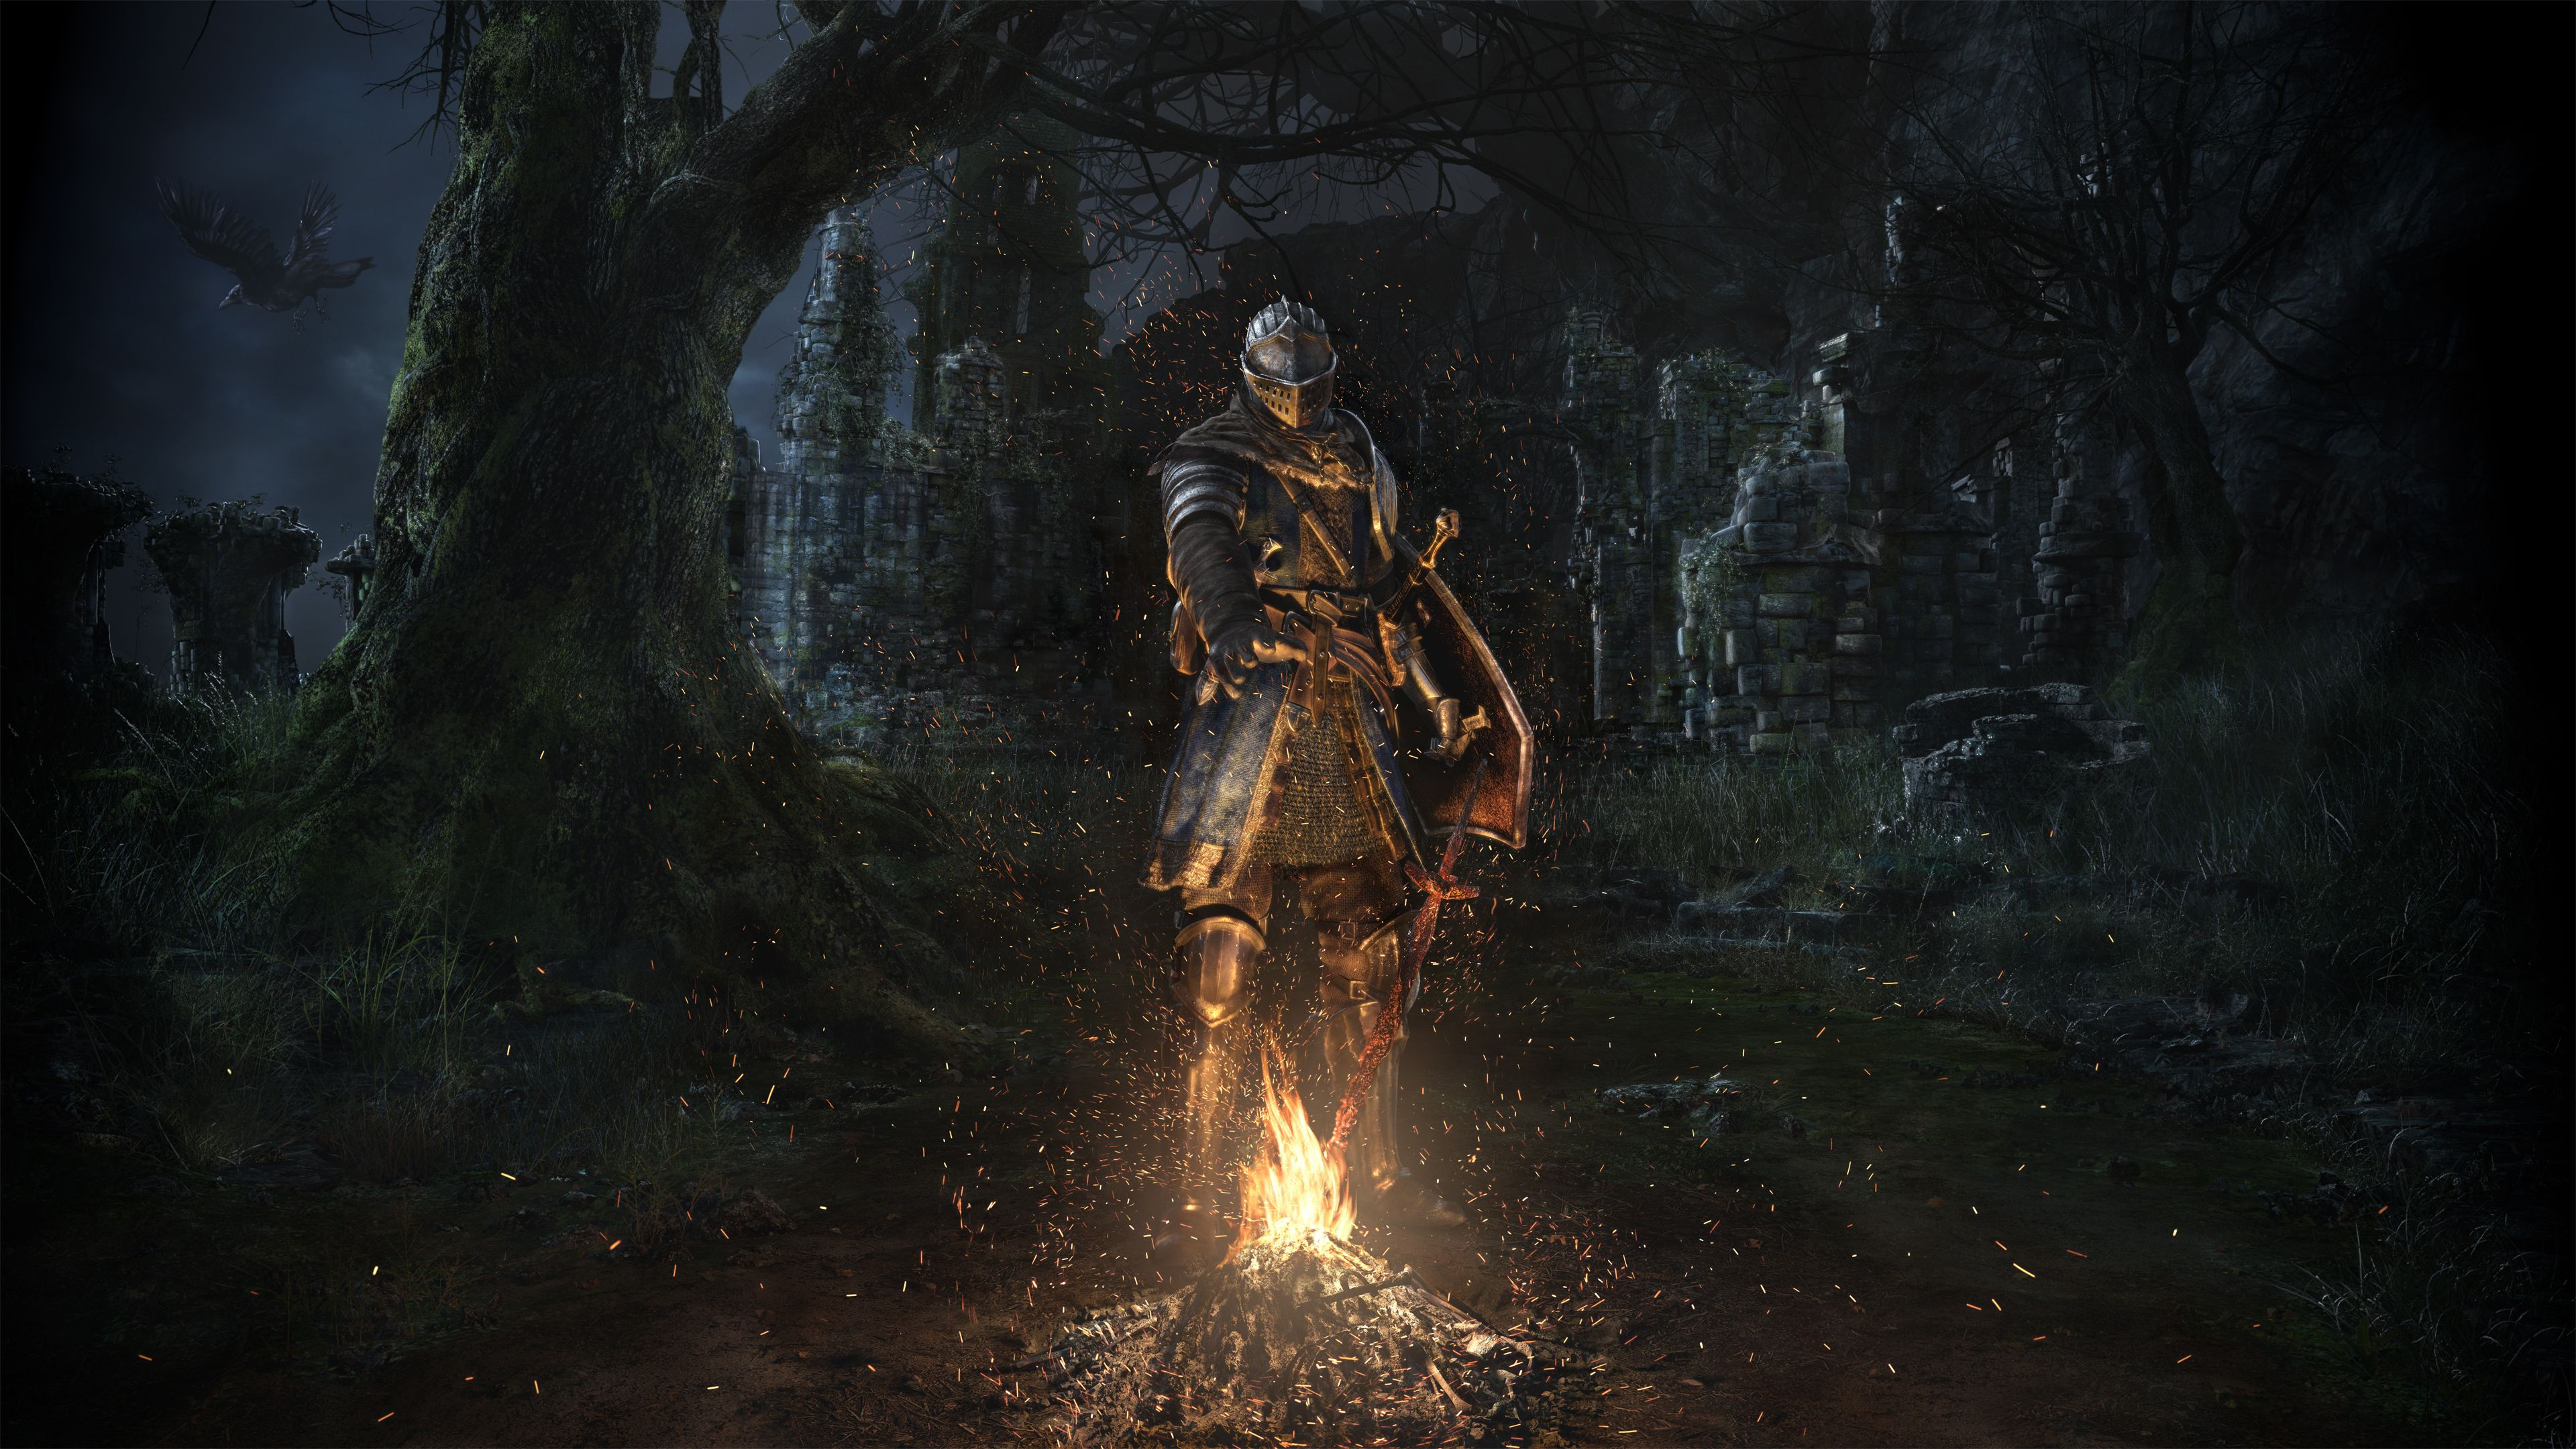 dark souls wallpaper hd, wallpaper engine dark souls